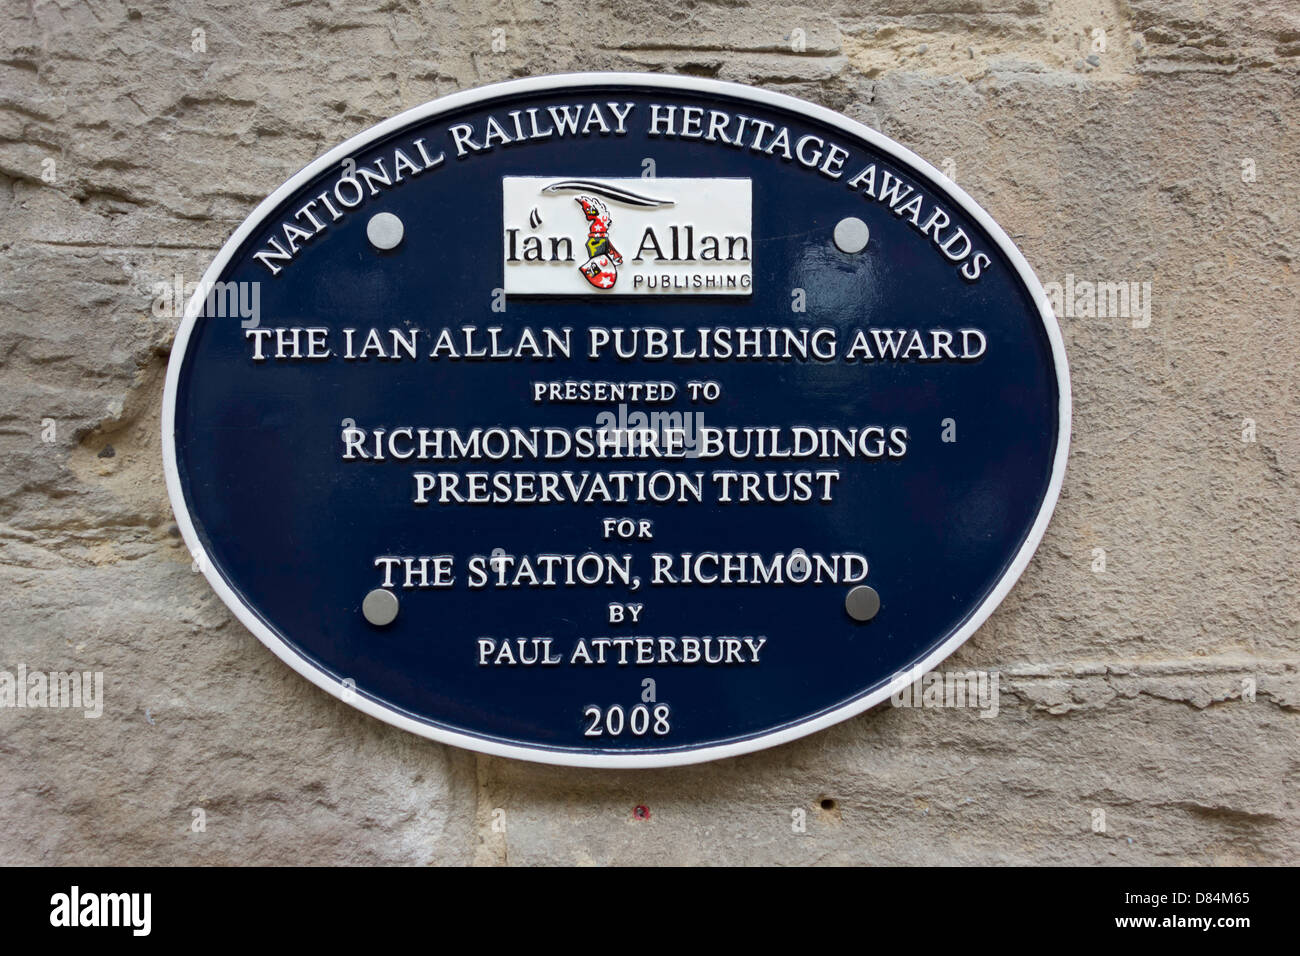 A National Railway Heritage Awards plaque at The Station in Richmond presented to Richmondshire Buildings Preservation Stock Photo